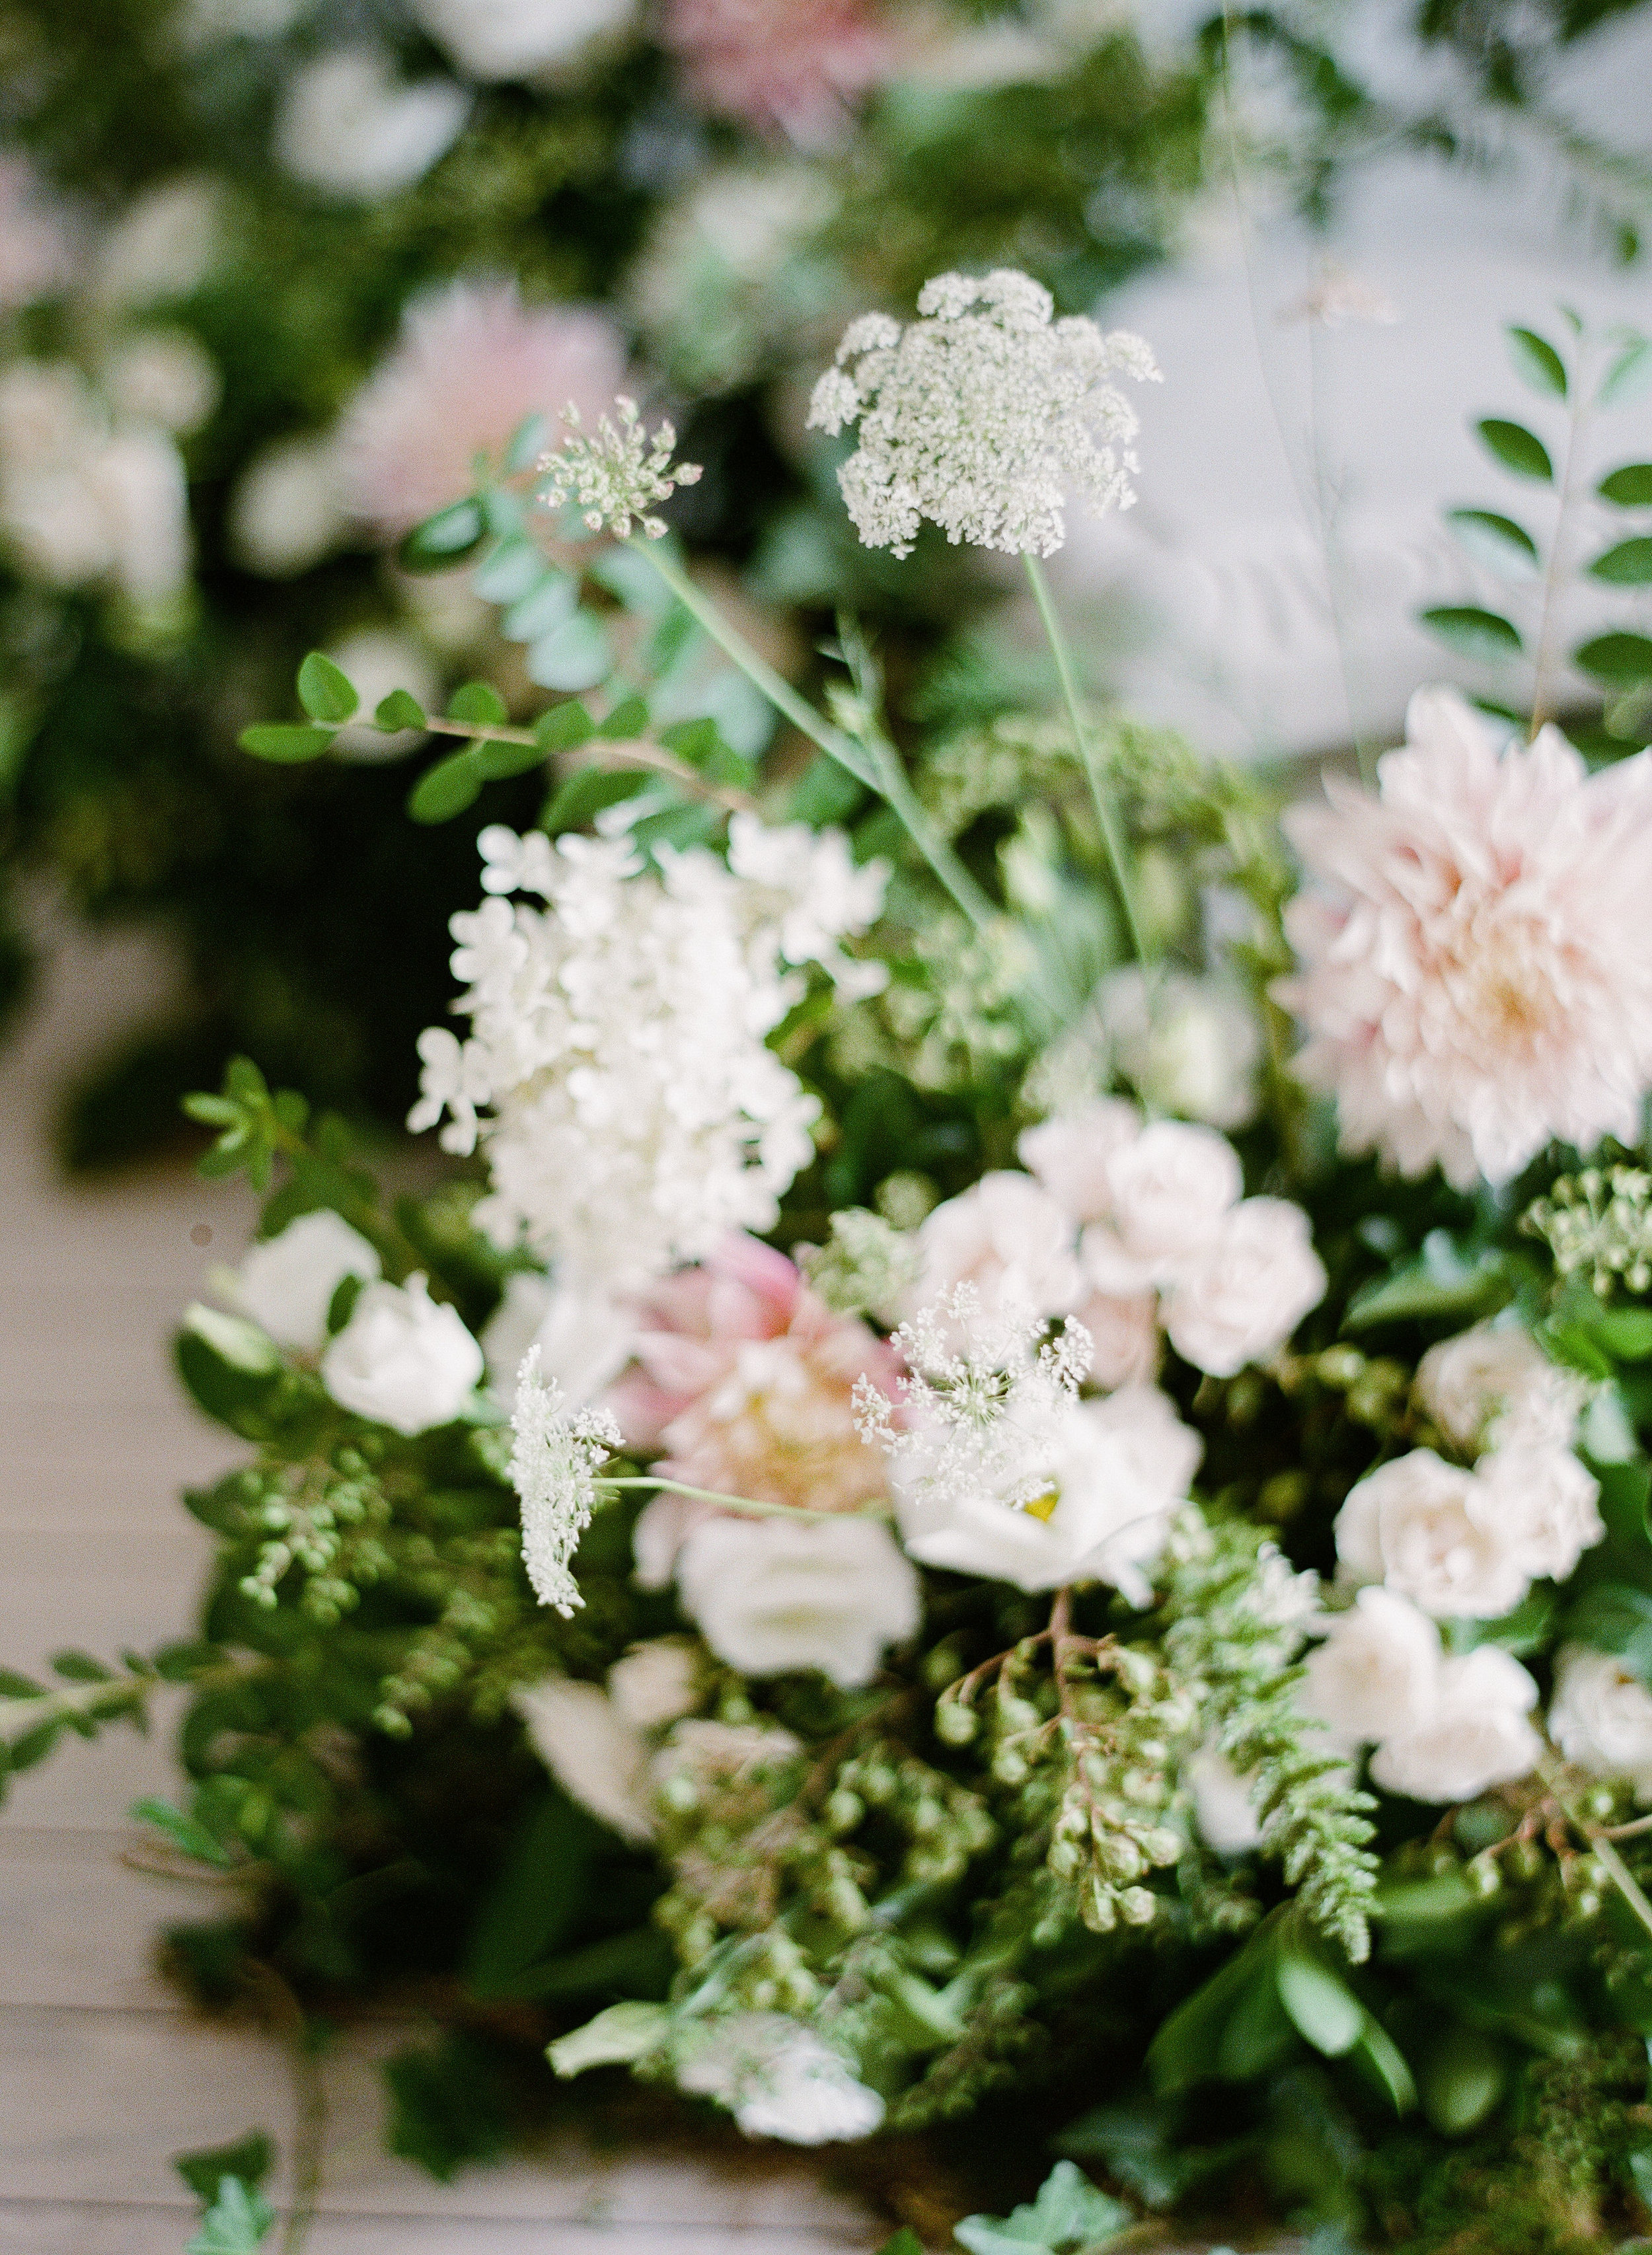 our style is honest and of the earth. - We source our flowers and greenery with a discerning eye, so that every stem is intentional. Seasonally curated, creations in May will not resemble those in September—we love that about our work.